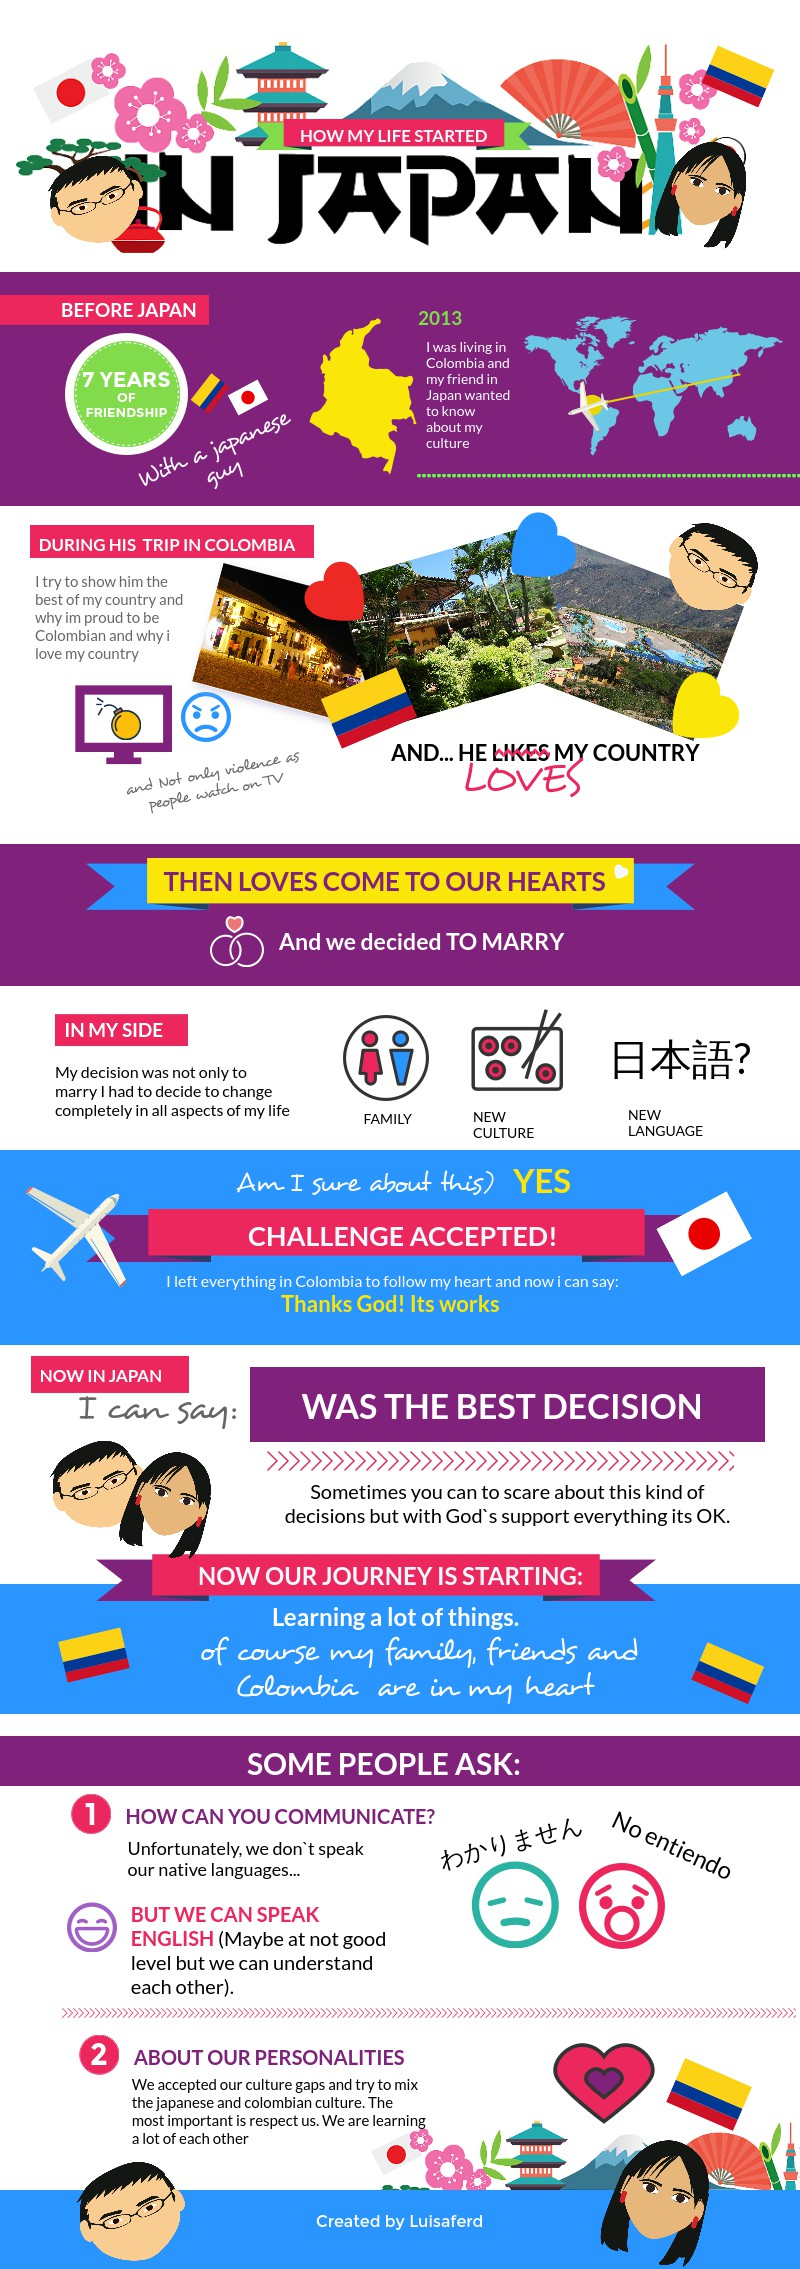 infographic story contest winner-how-my-life-started-in-japan